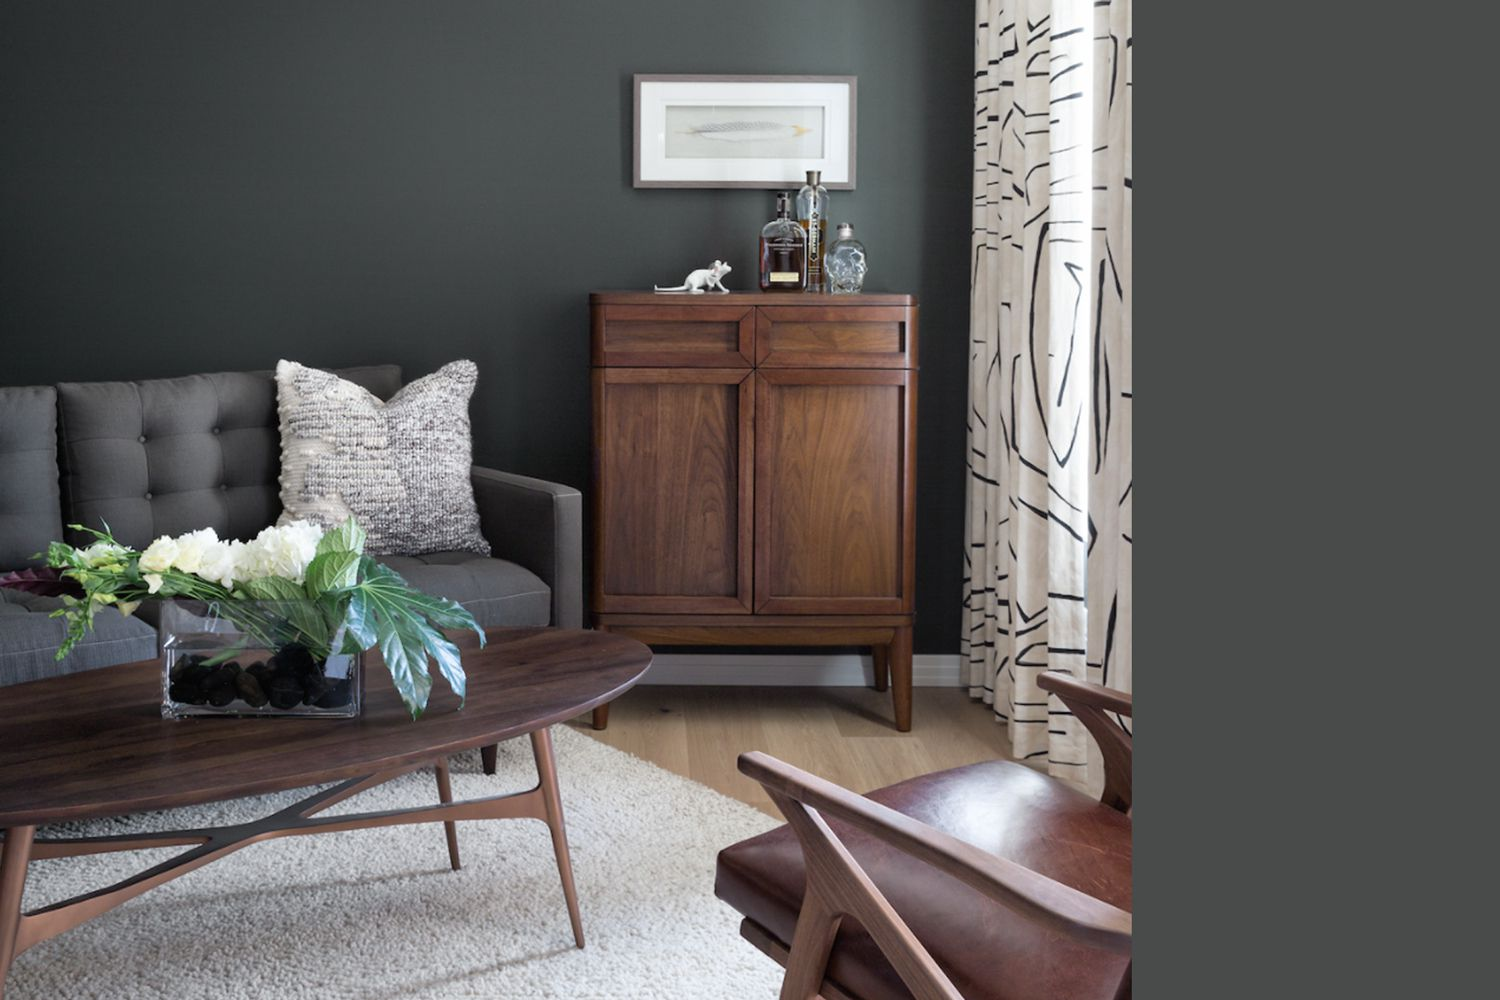 Interior painted a similar color to Behr Astronomical Gray